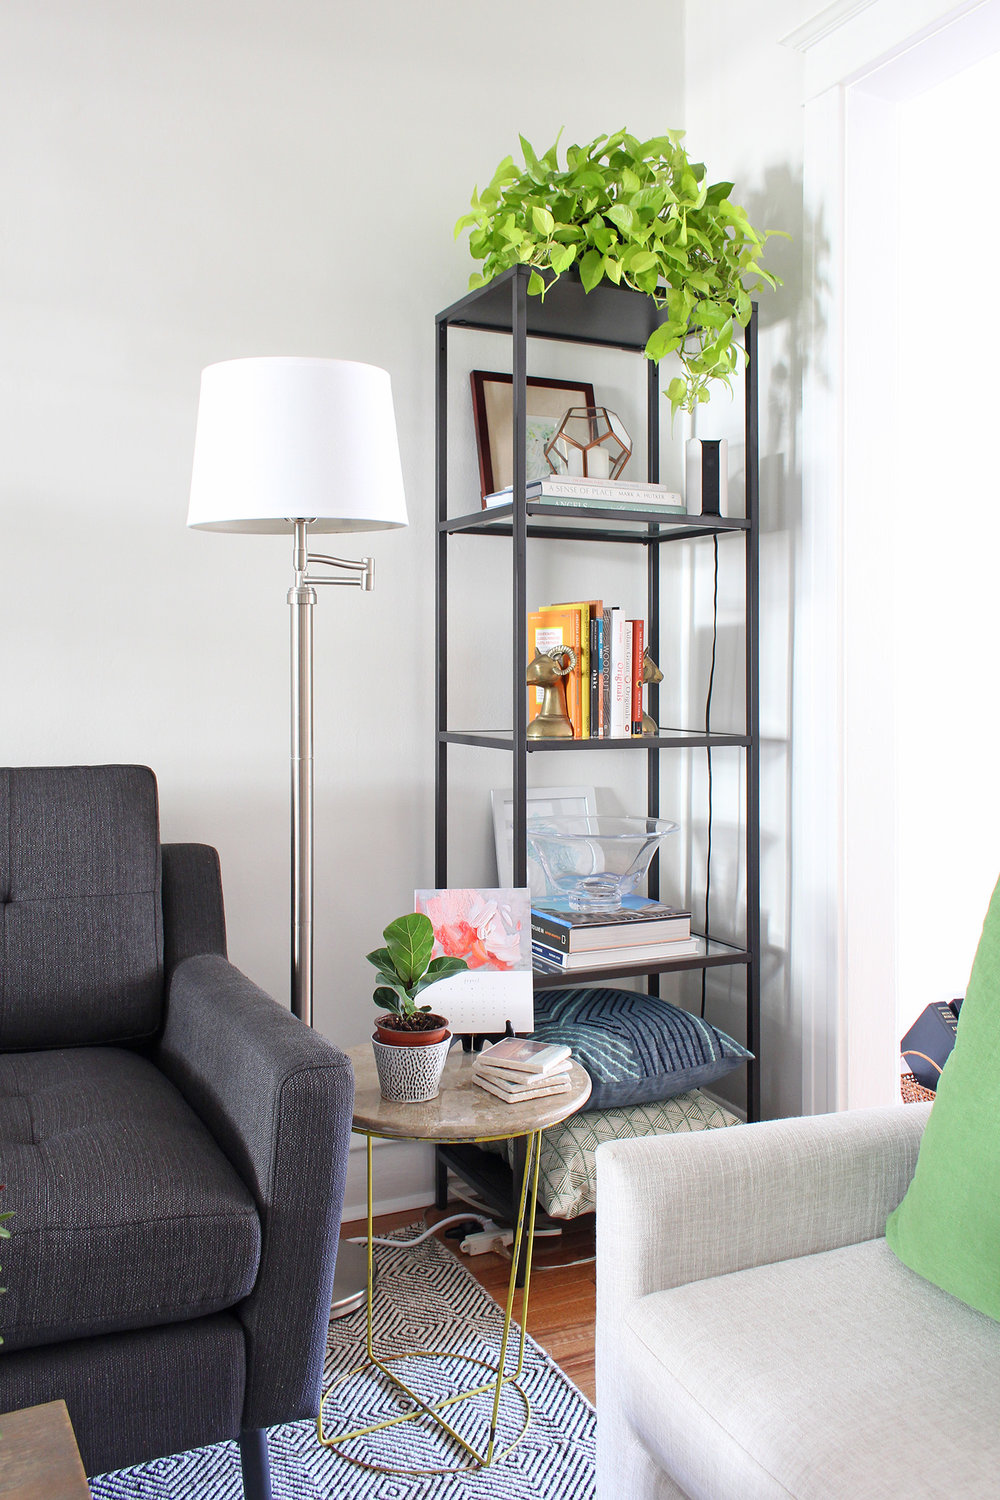 What house plants should YOU have in your home? I've got some tips for you and also share a new place you can purchase plants online! This modern living room has a pothos on top of a bookshelf - it does well in low light conditions.